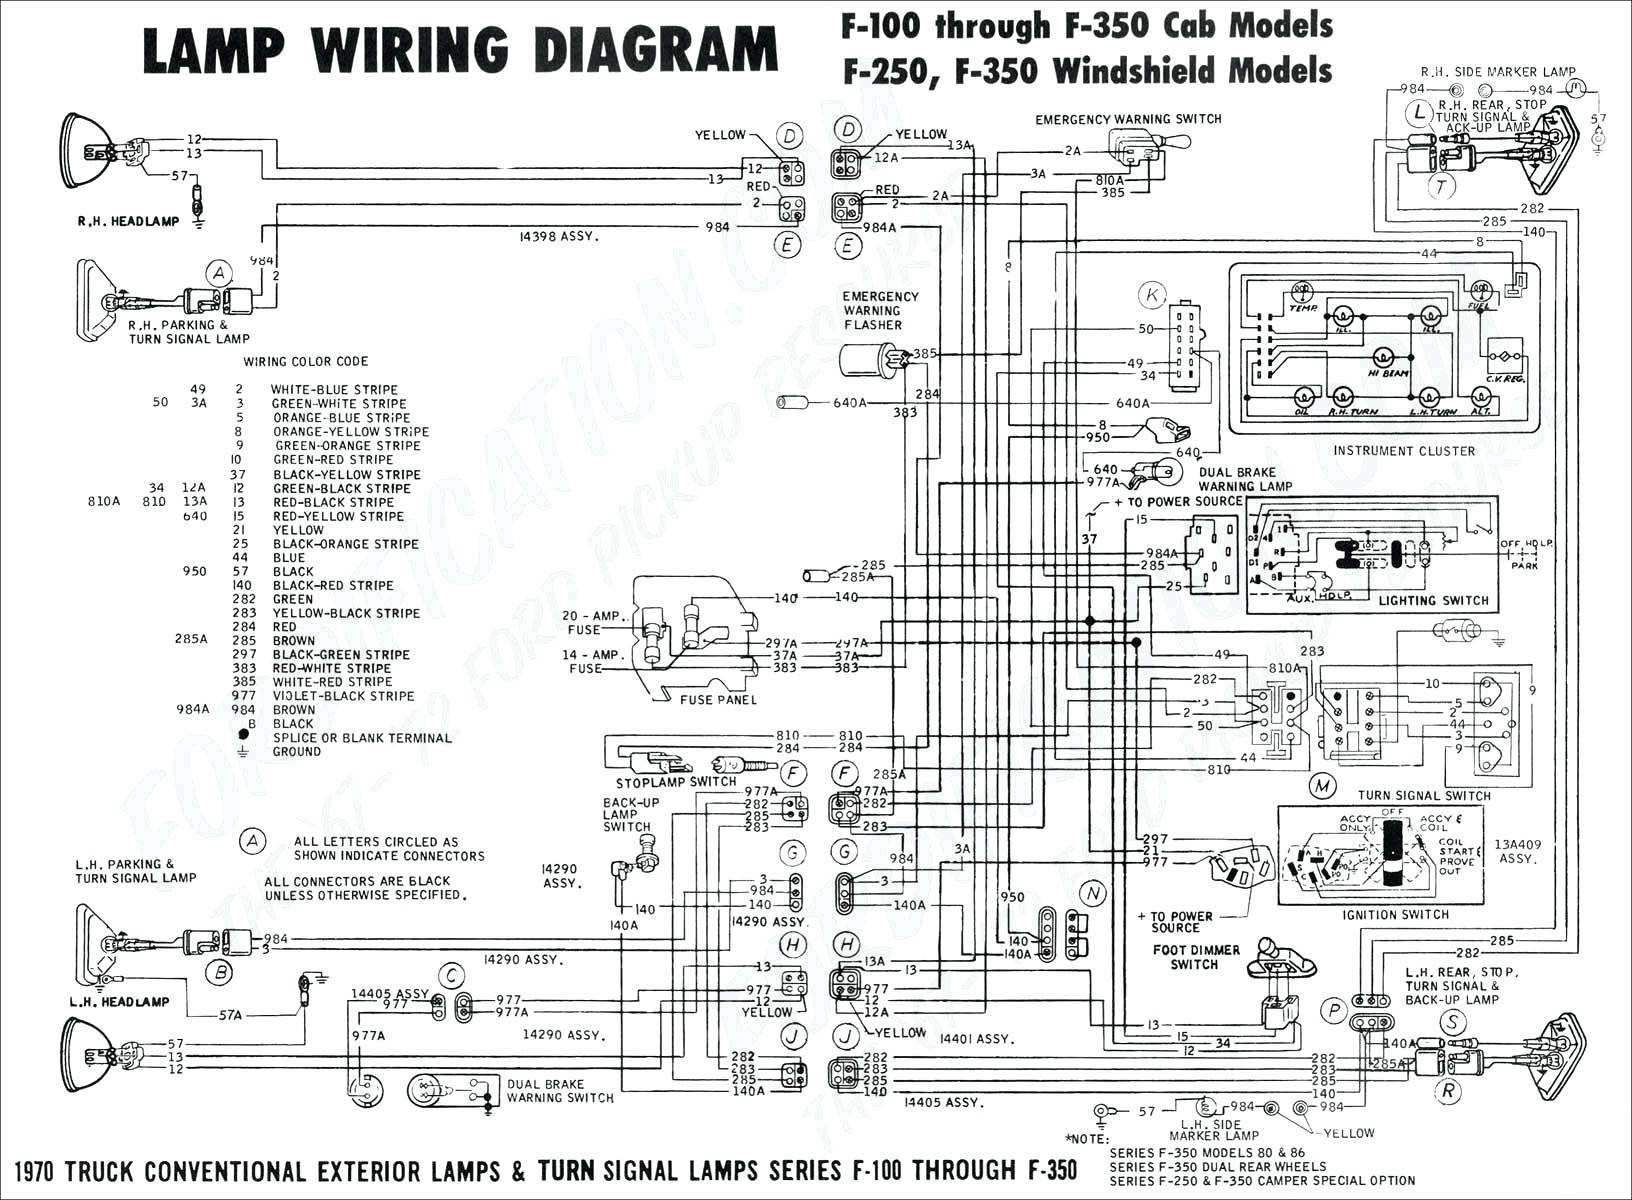 ford ranger wiring diagram Download-Wiring Diagram Conventions Reference Wiring Diagrams For Ford Fresh Ford Ranger Engine Diagram Wiring 11-t